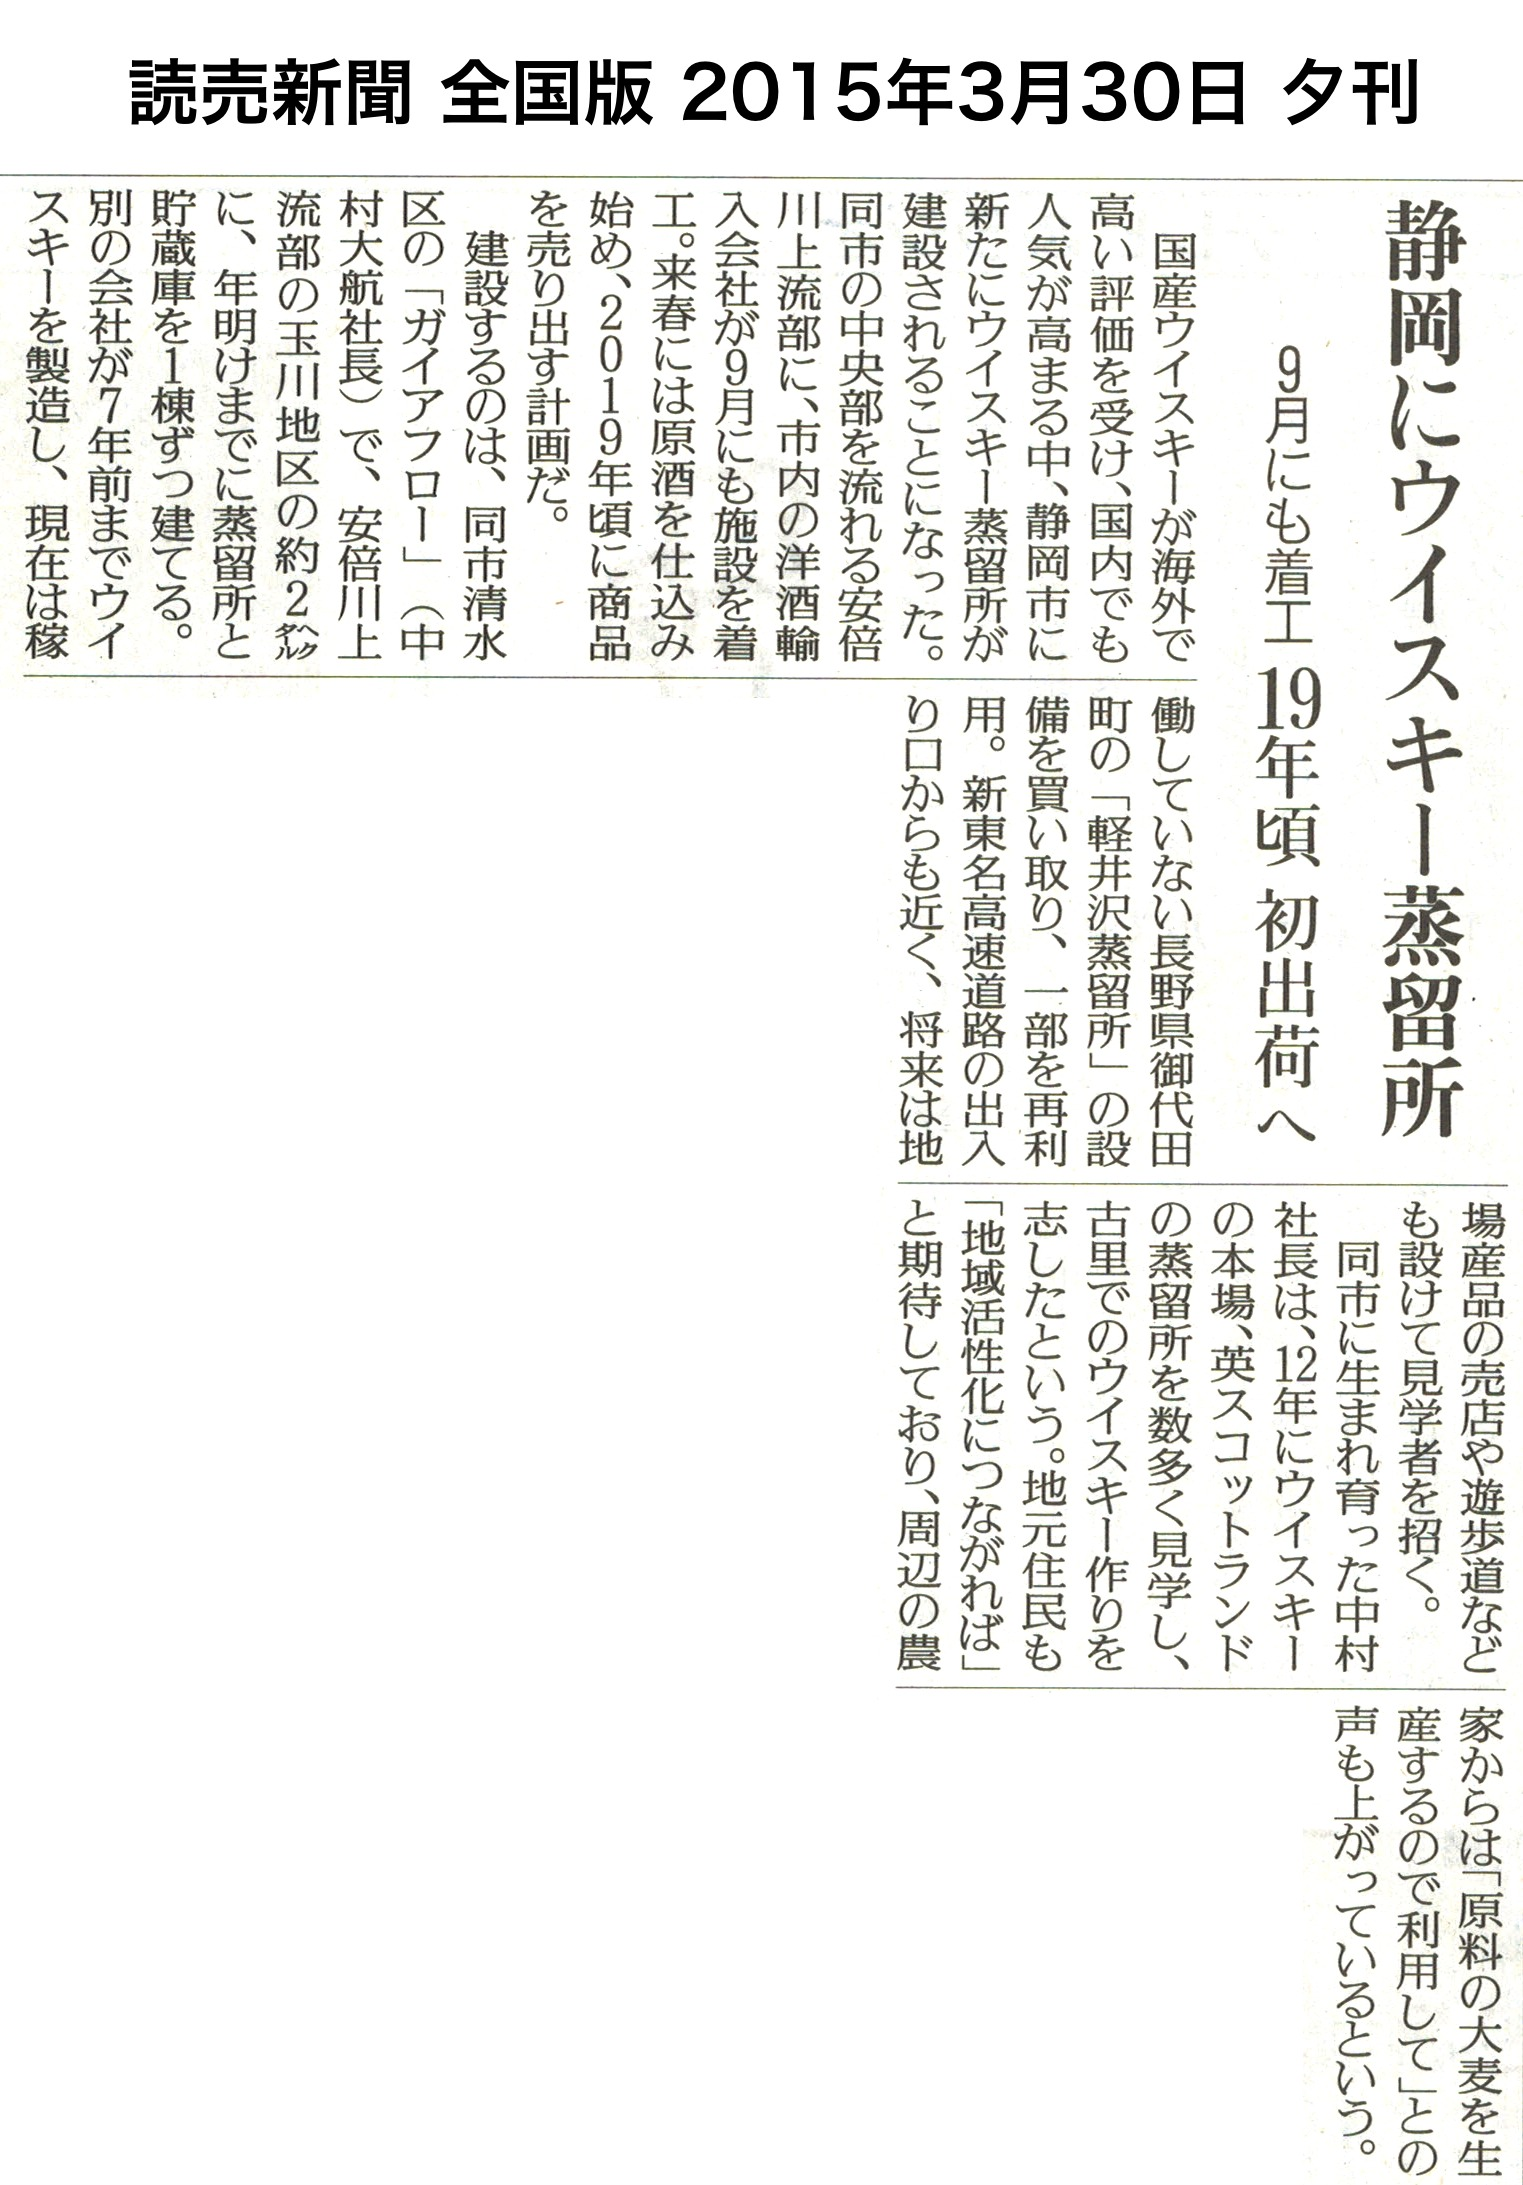 Media-2015-03-30-pm-Yomiuri-National